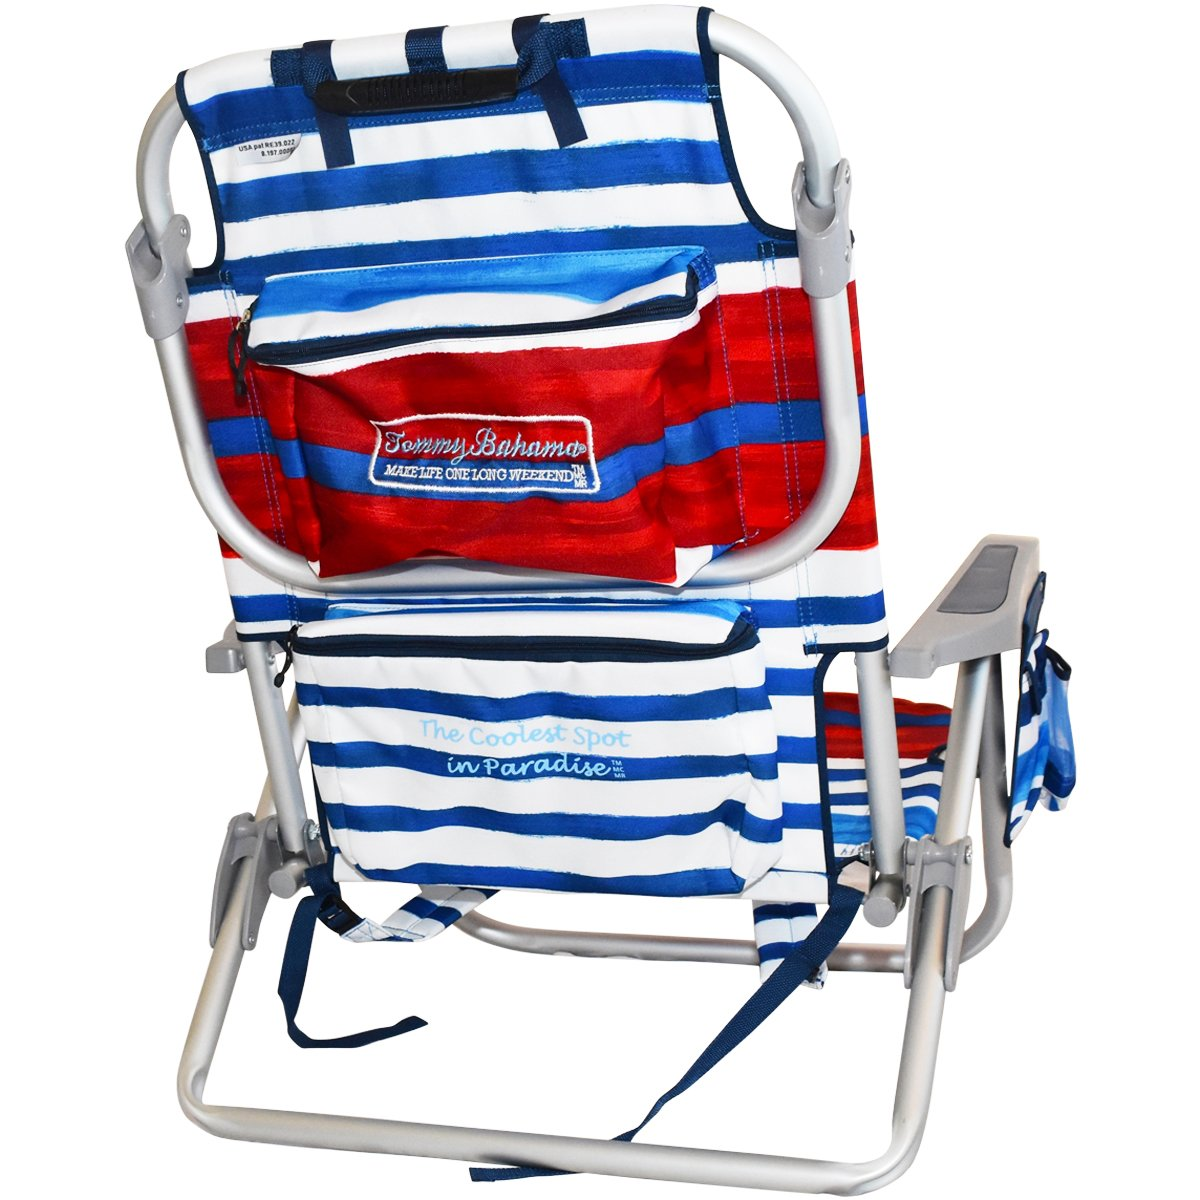 2 Tommy Bahama Backpack Beach Chairs/ Red White Blue Stripes + 1 Medium Tote Bag by Tommy Bahama Beach Gear (Image #4)